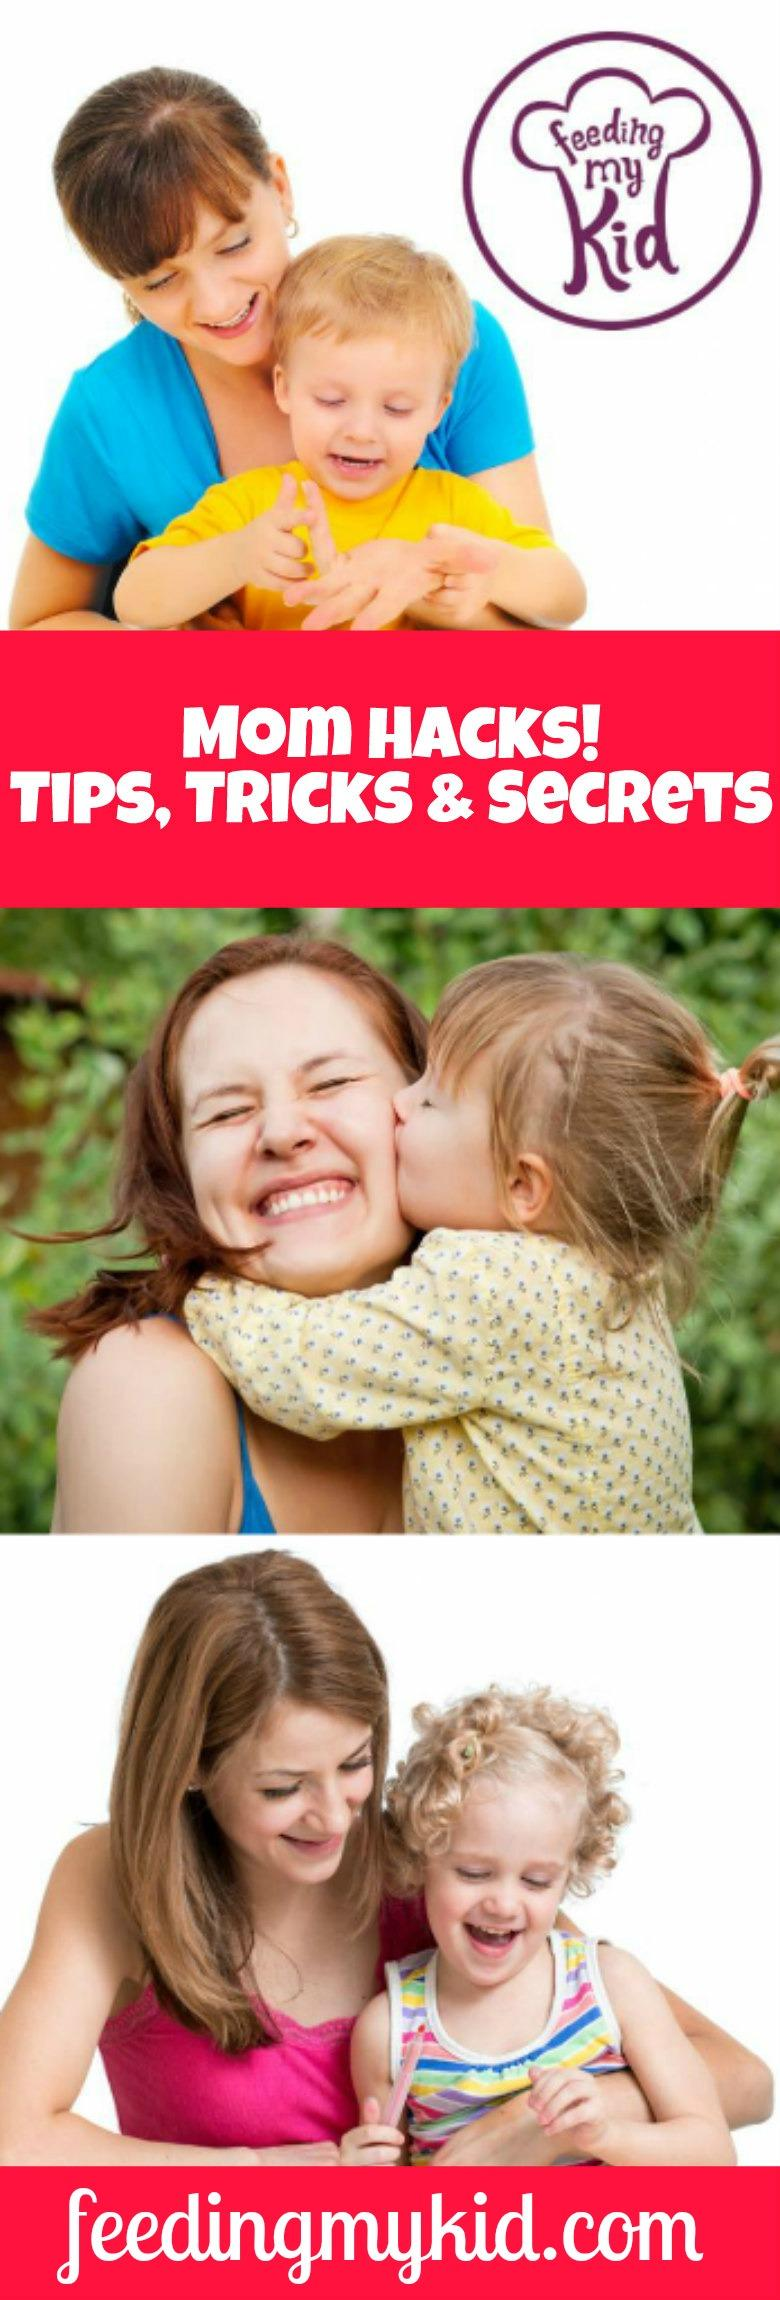 This is a must pin! Some great mom and parenting hacks and tips every parent could use! Feeding My Kid is a website for parents, filled with all the information you need about how to raise your kids, from healthy tips to nutritious recipes. #videos #tips #hacks #parenting